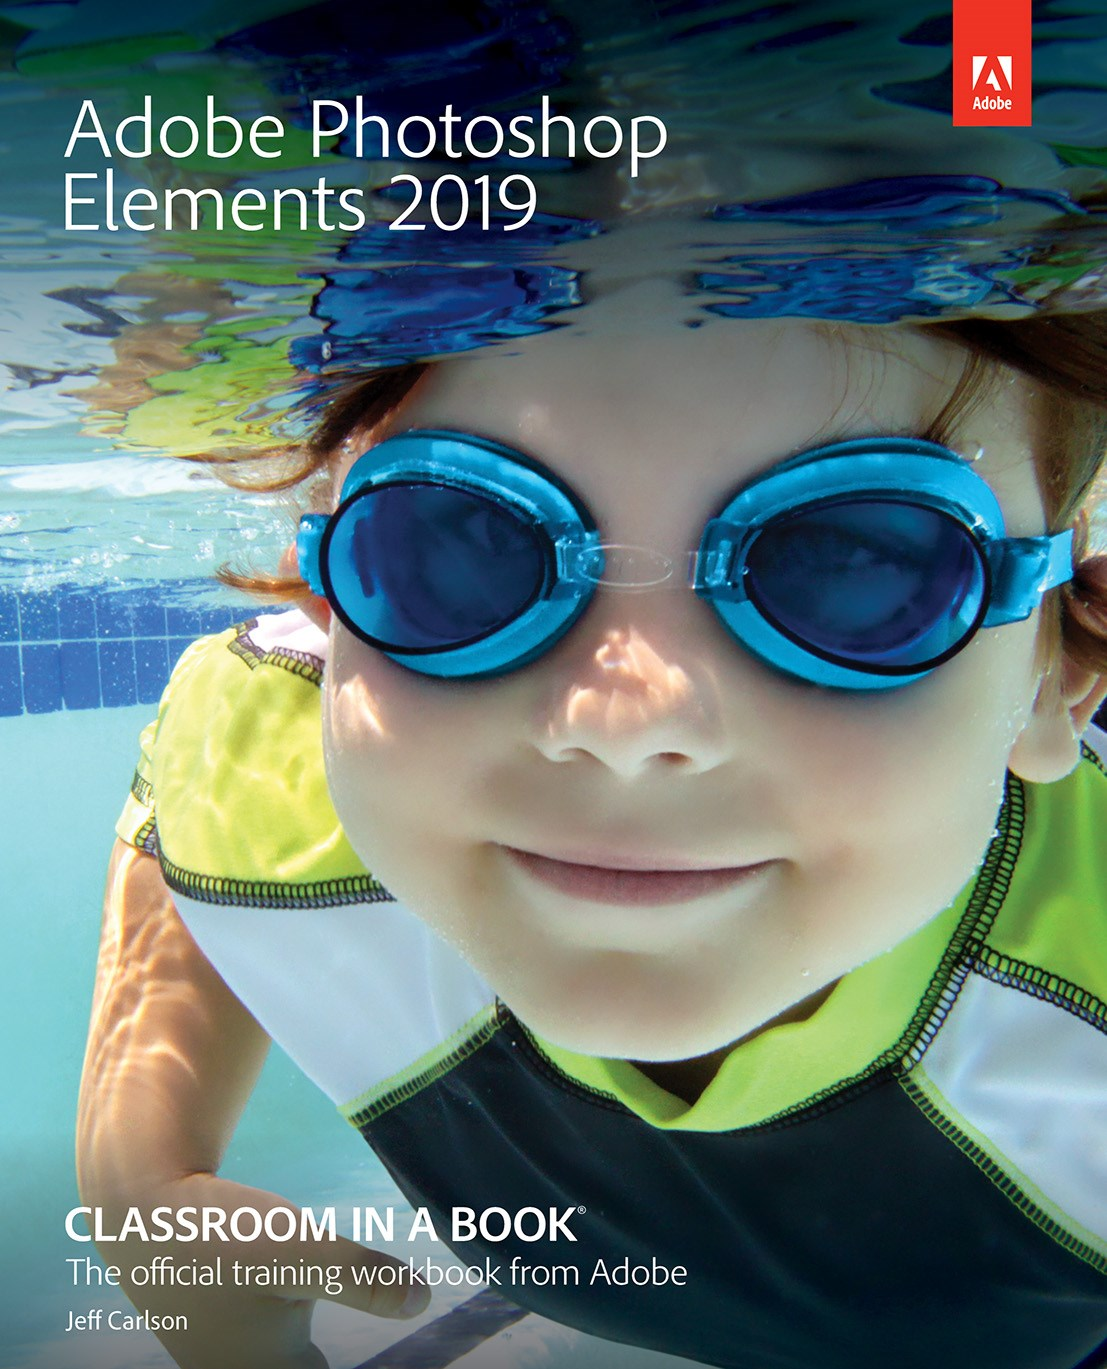 Adobe Photoshop Elements 2019 Classroom in a Book (Web Edition)